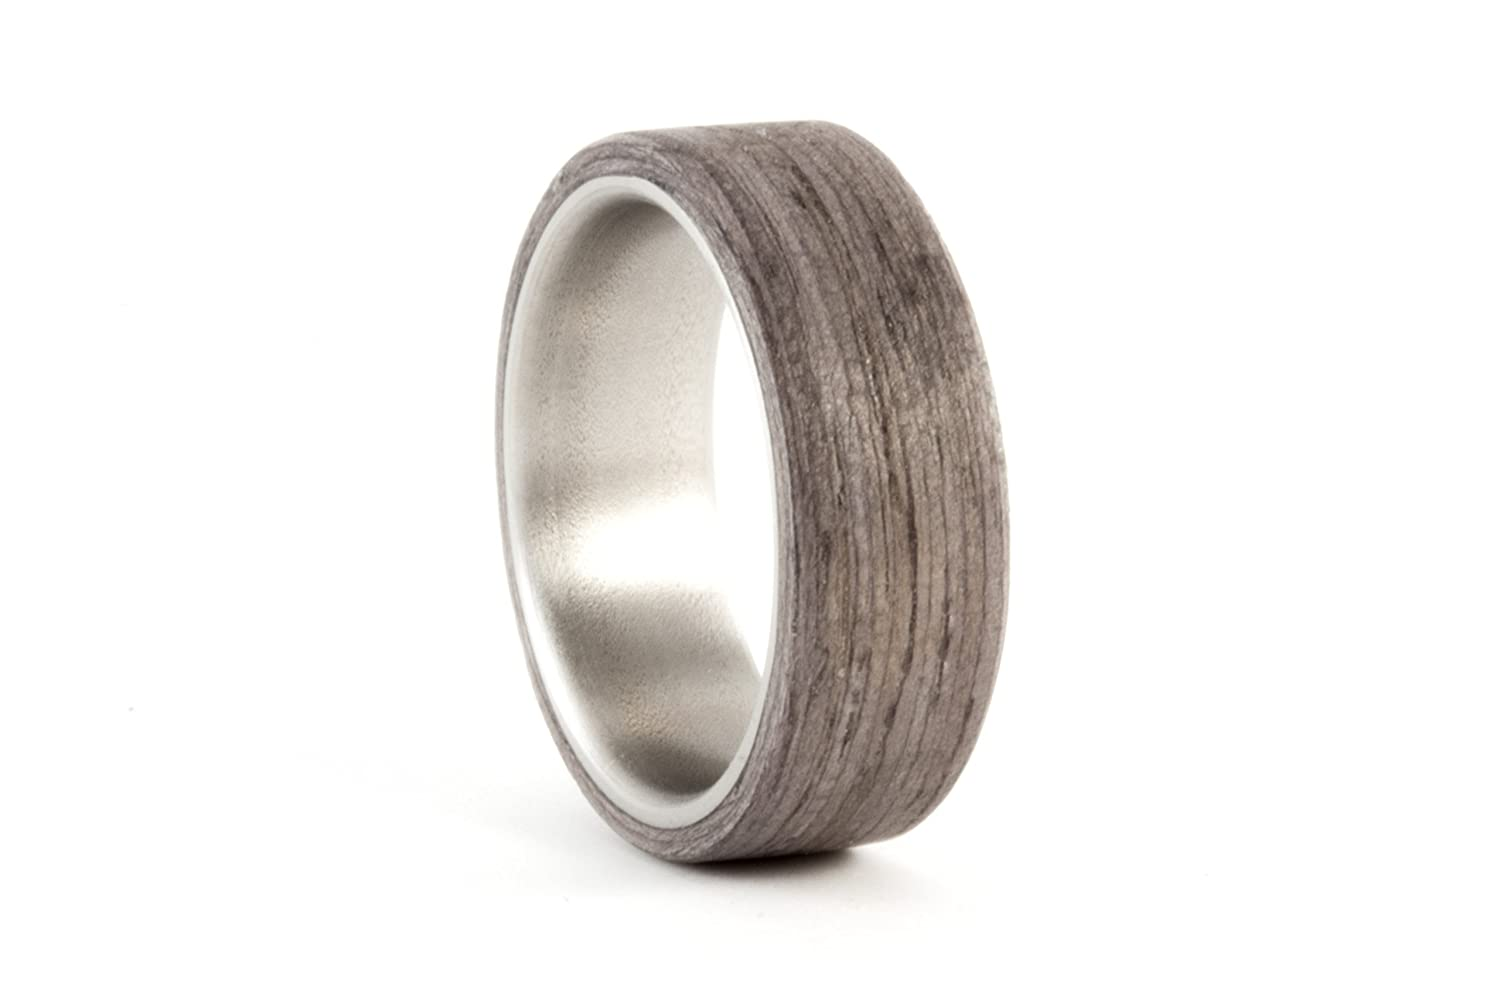 Amazon Men's Titanium And Bentwood Ring Wooden Grey Wood Wedding Band Water Resistant Very Durable Hypoallergenic 005007n Handmade: Wood Wedding Band Made At Websimilar.org